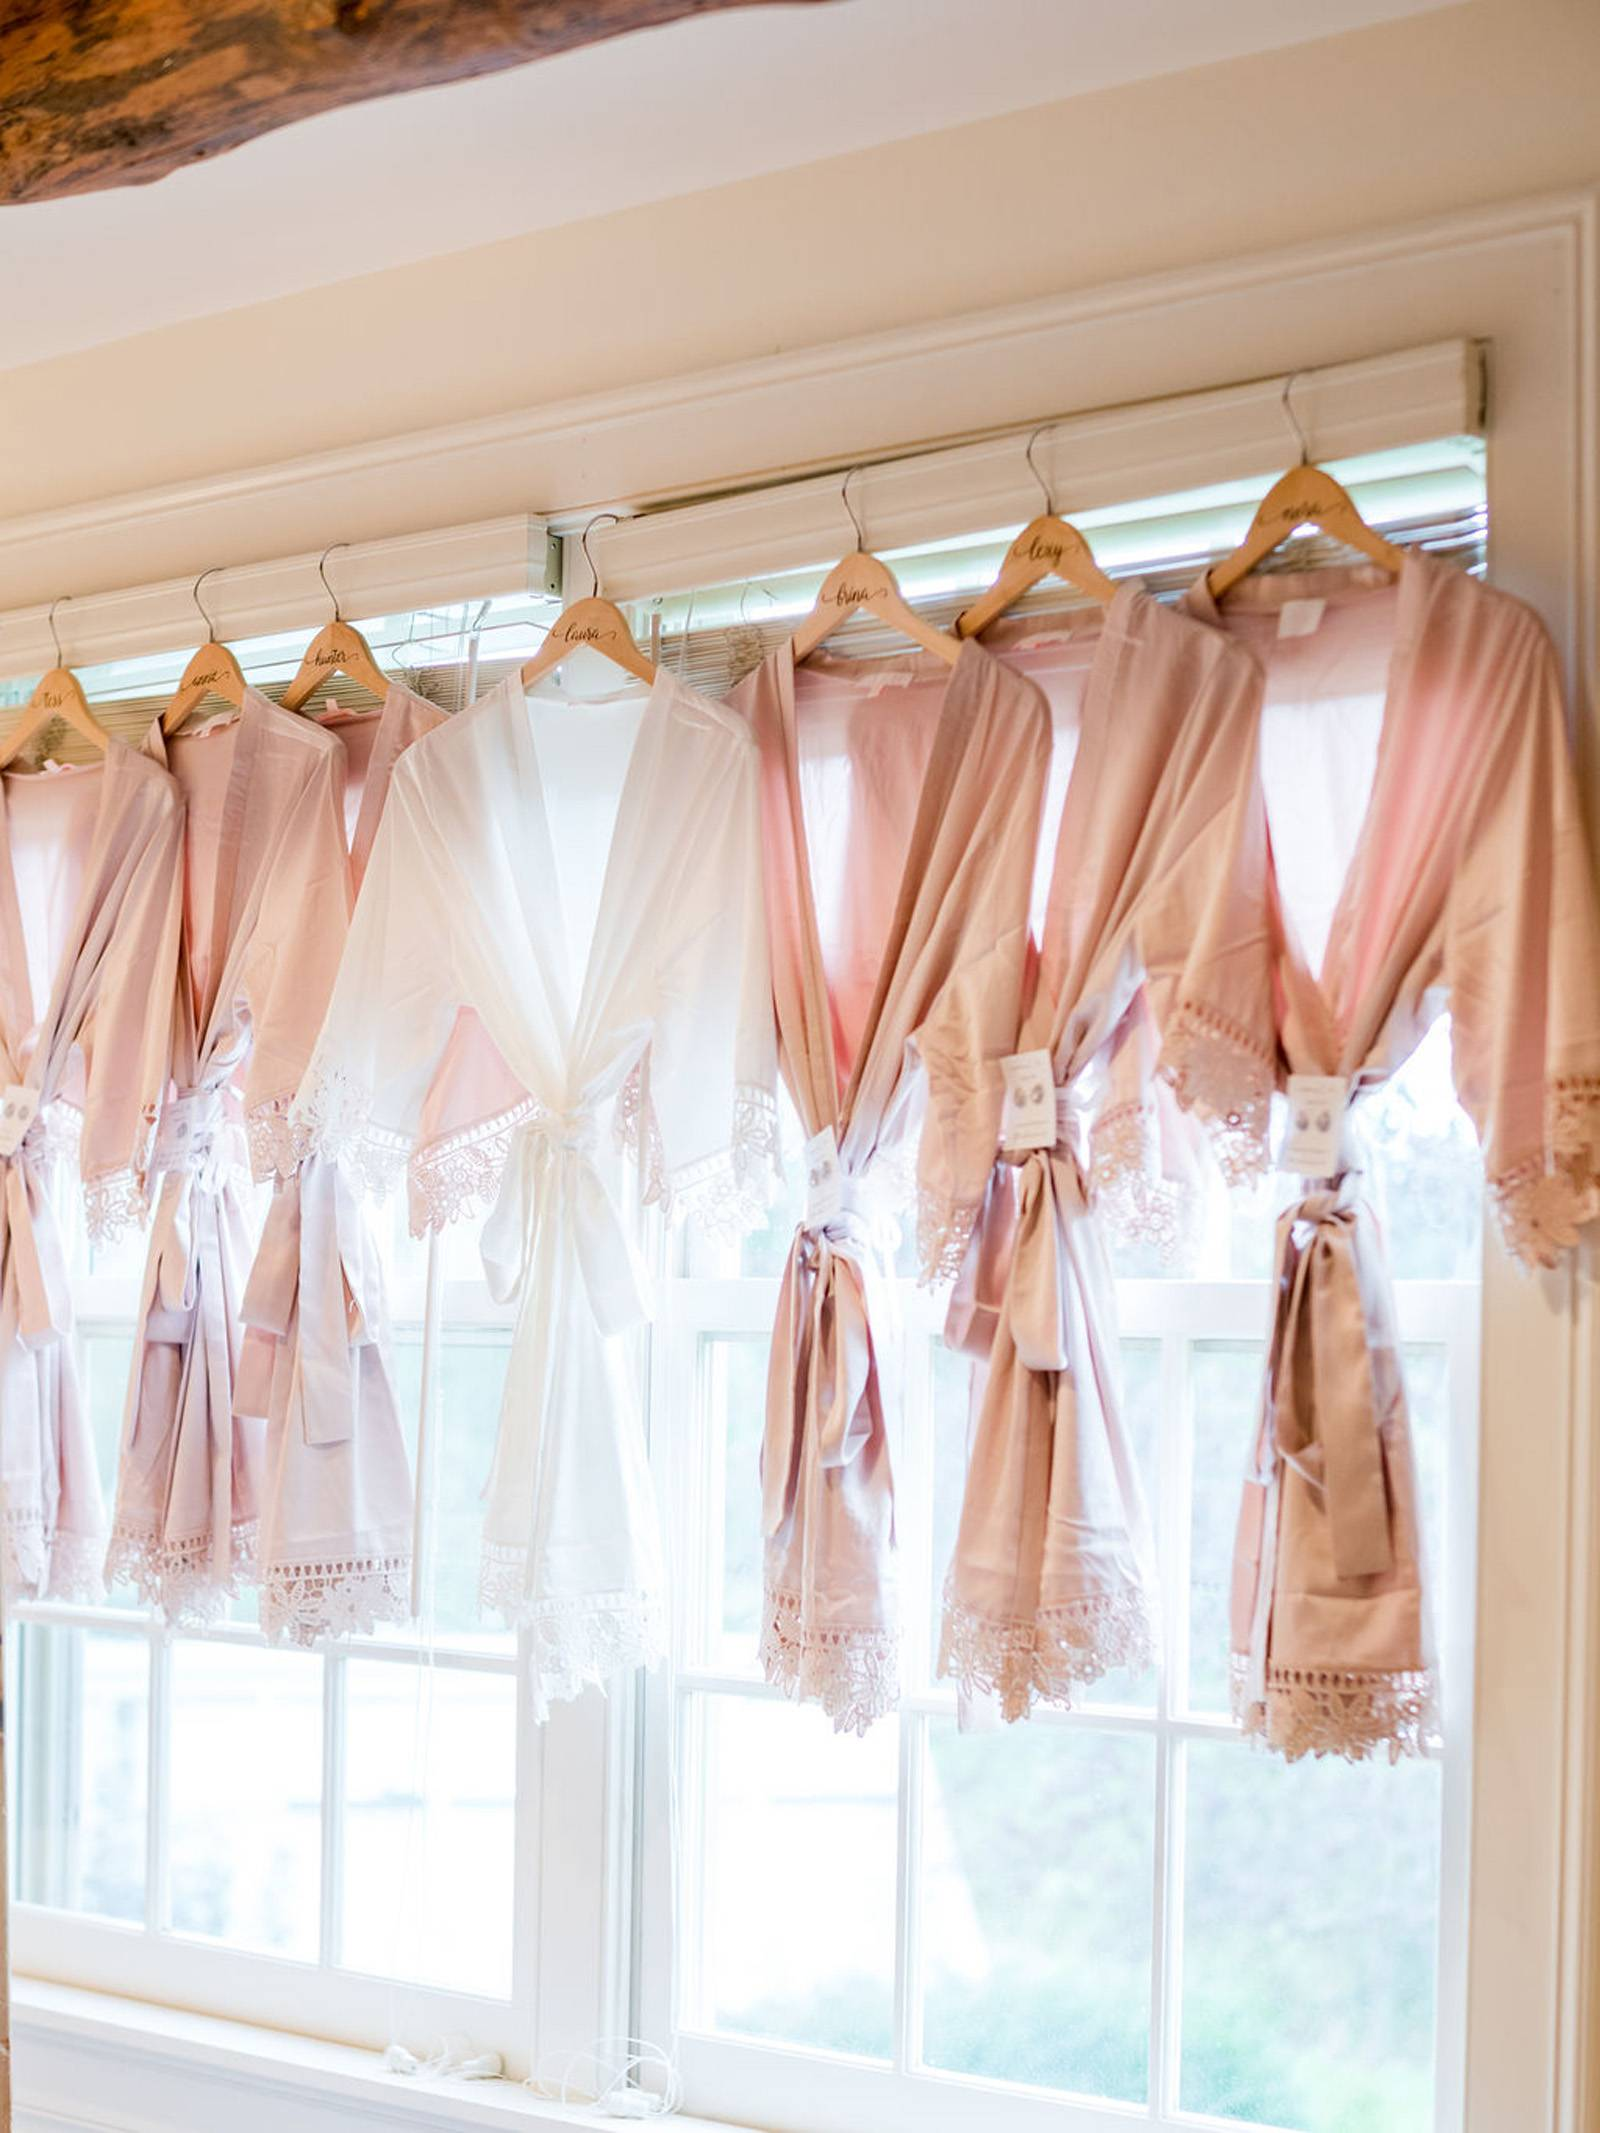 Blush bridesmaid robes handing in window on wedding day